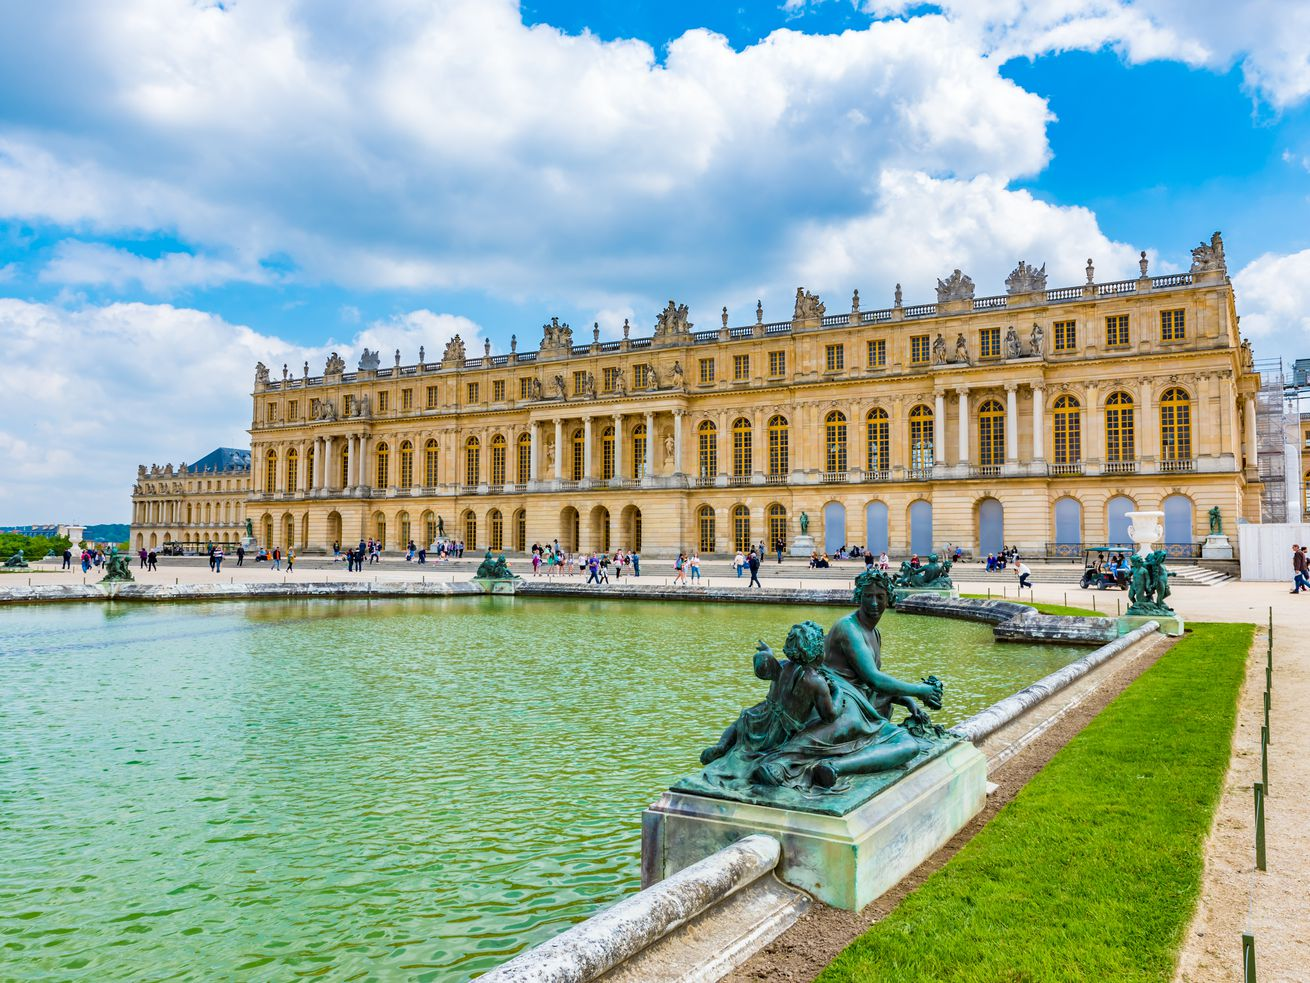 A hotel is opening at the Palace of Versailles